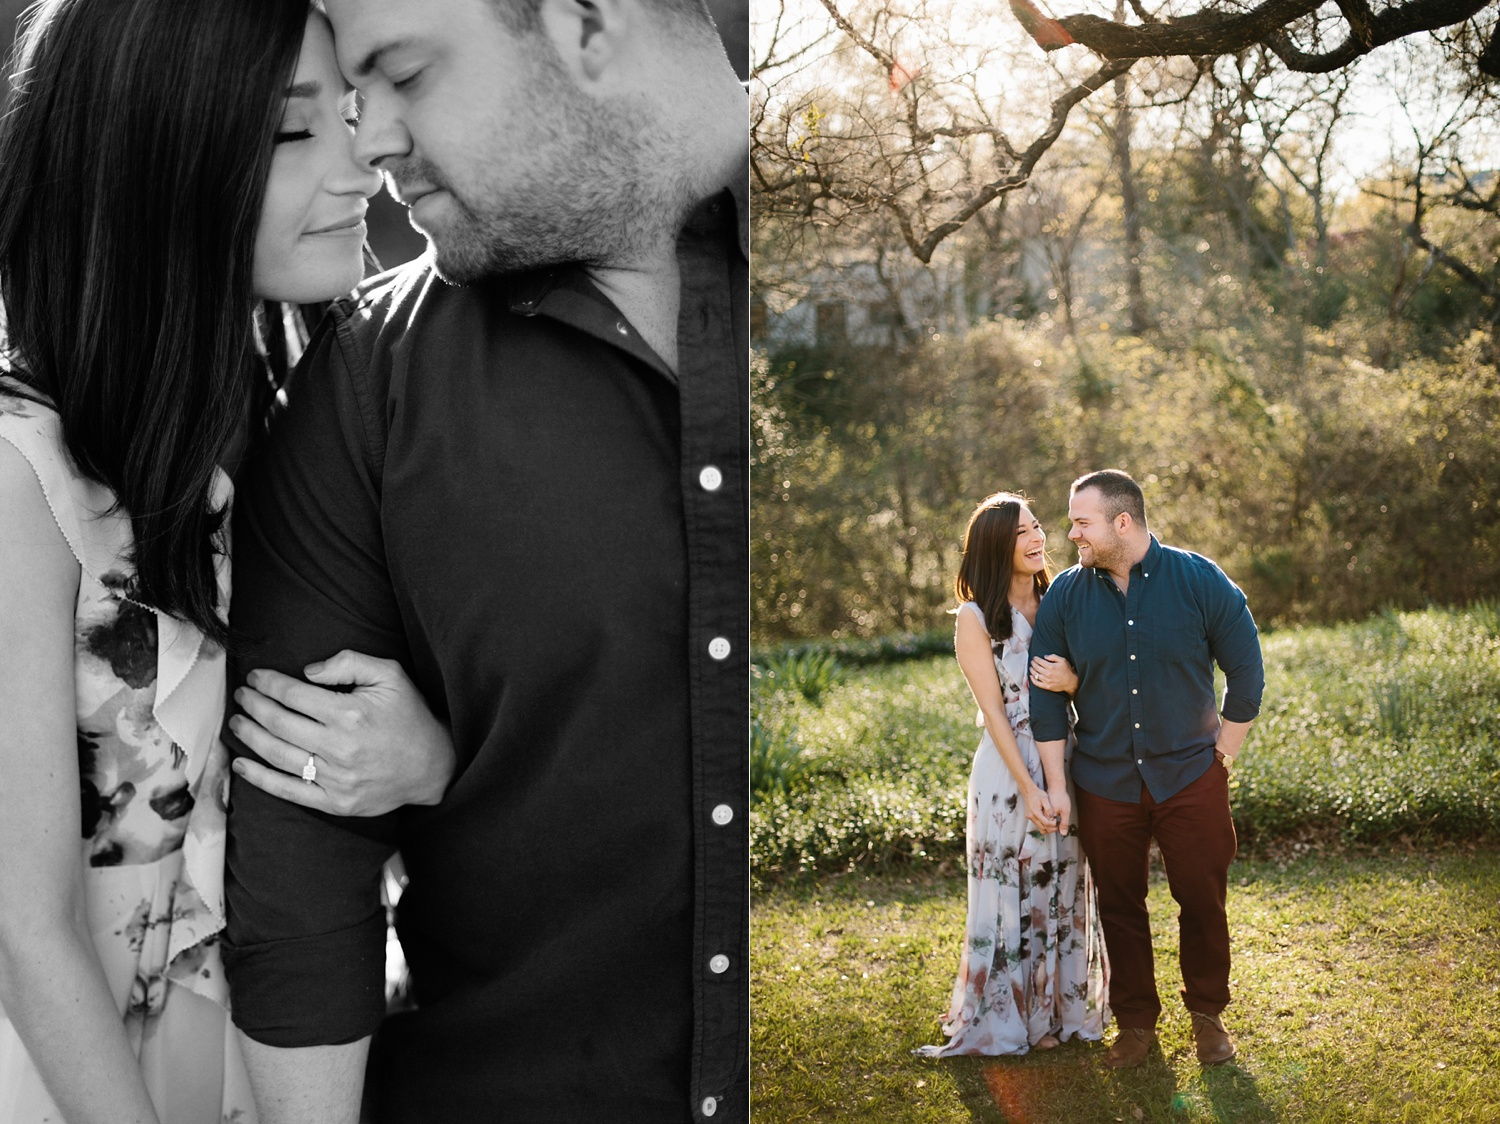 Kadee + Tyler _ a forest and city skyline engagement shoot in Dallas by North Texas Wedding Photographer Rachel Meagan Photography_17